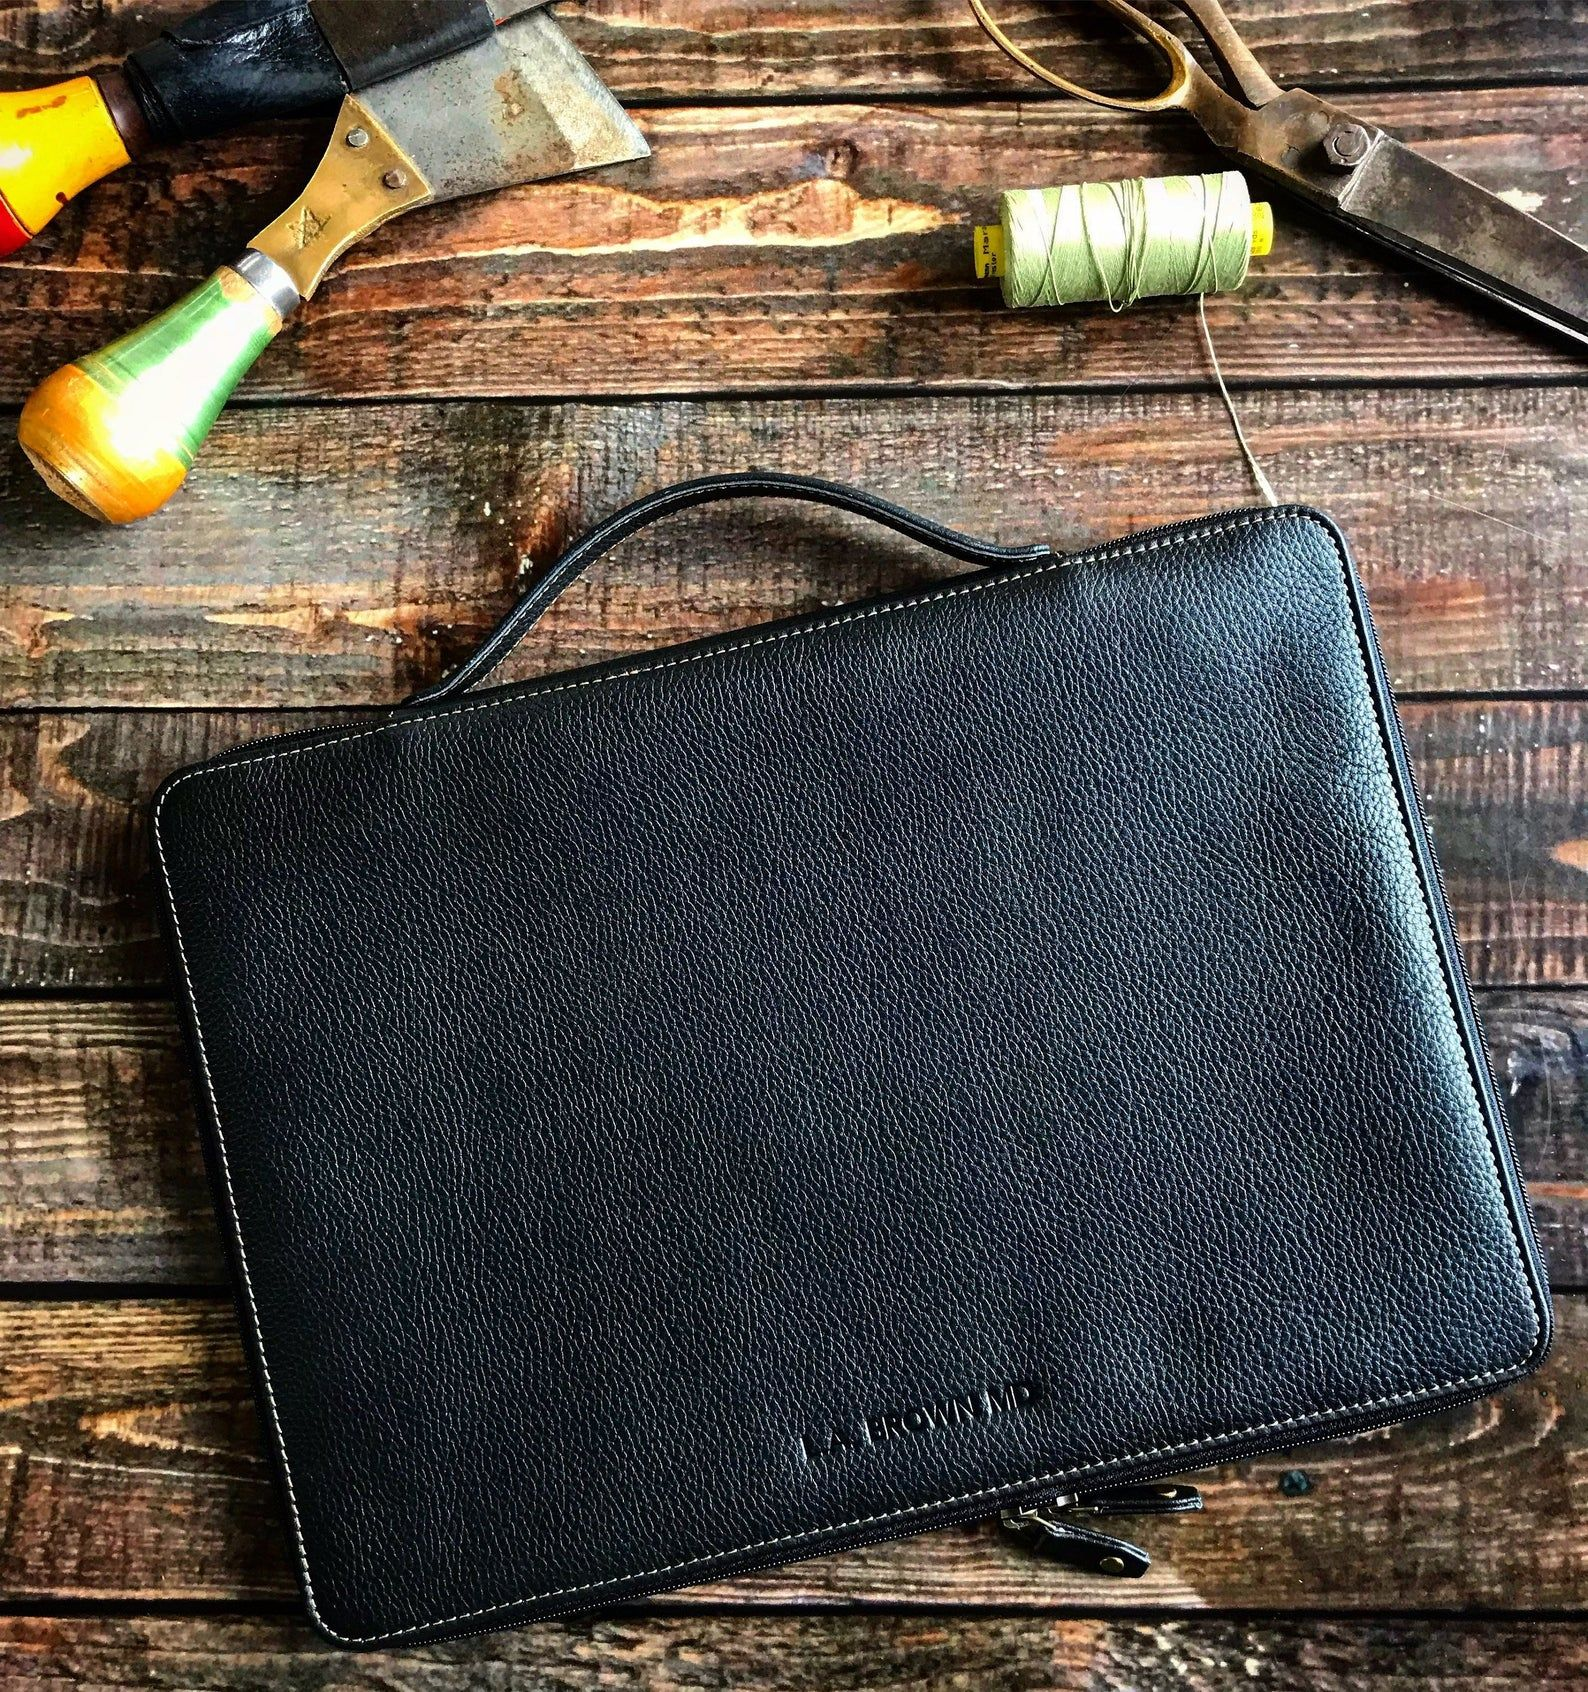 Leather Laptop Case Snug Fit, Leather MacBook Case with